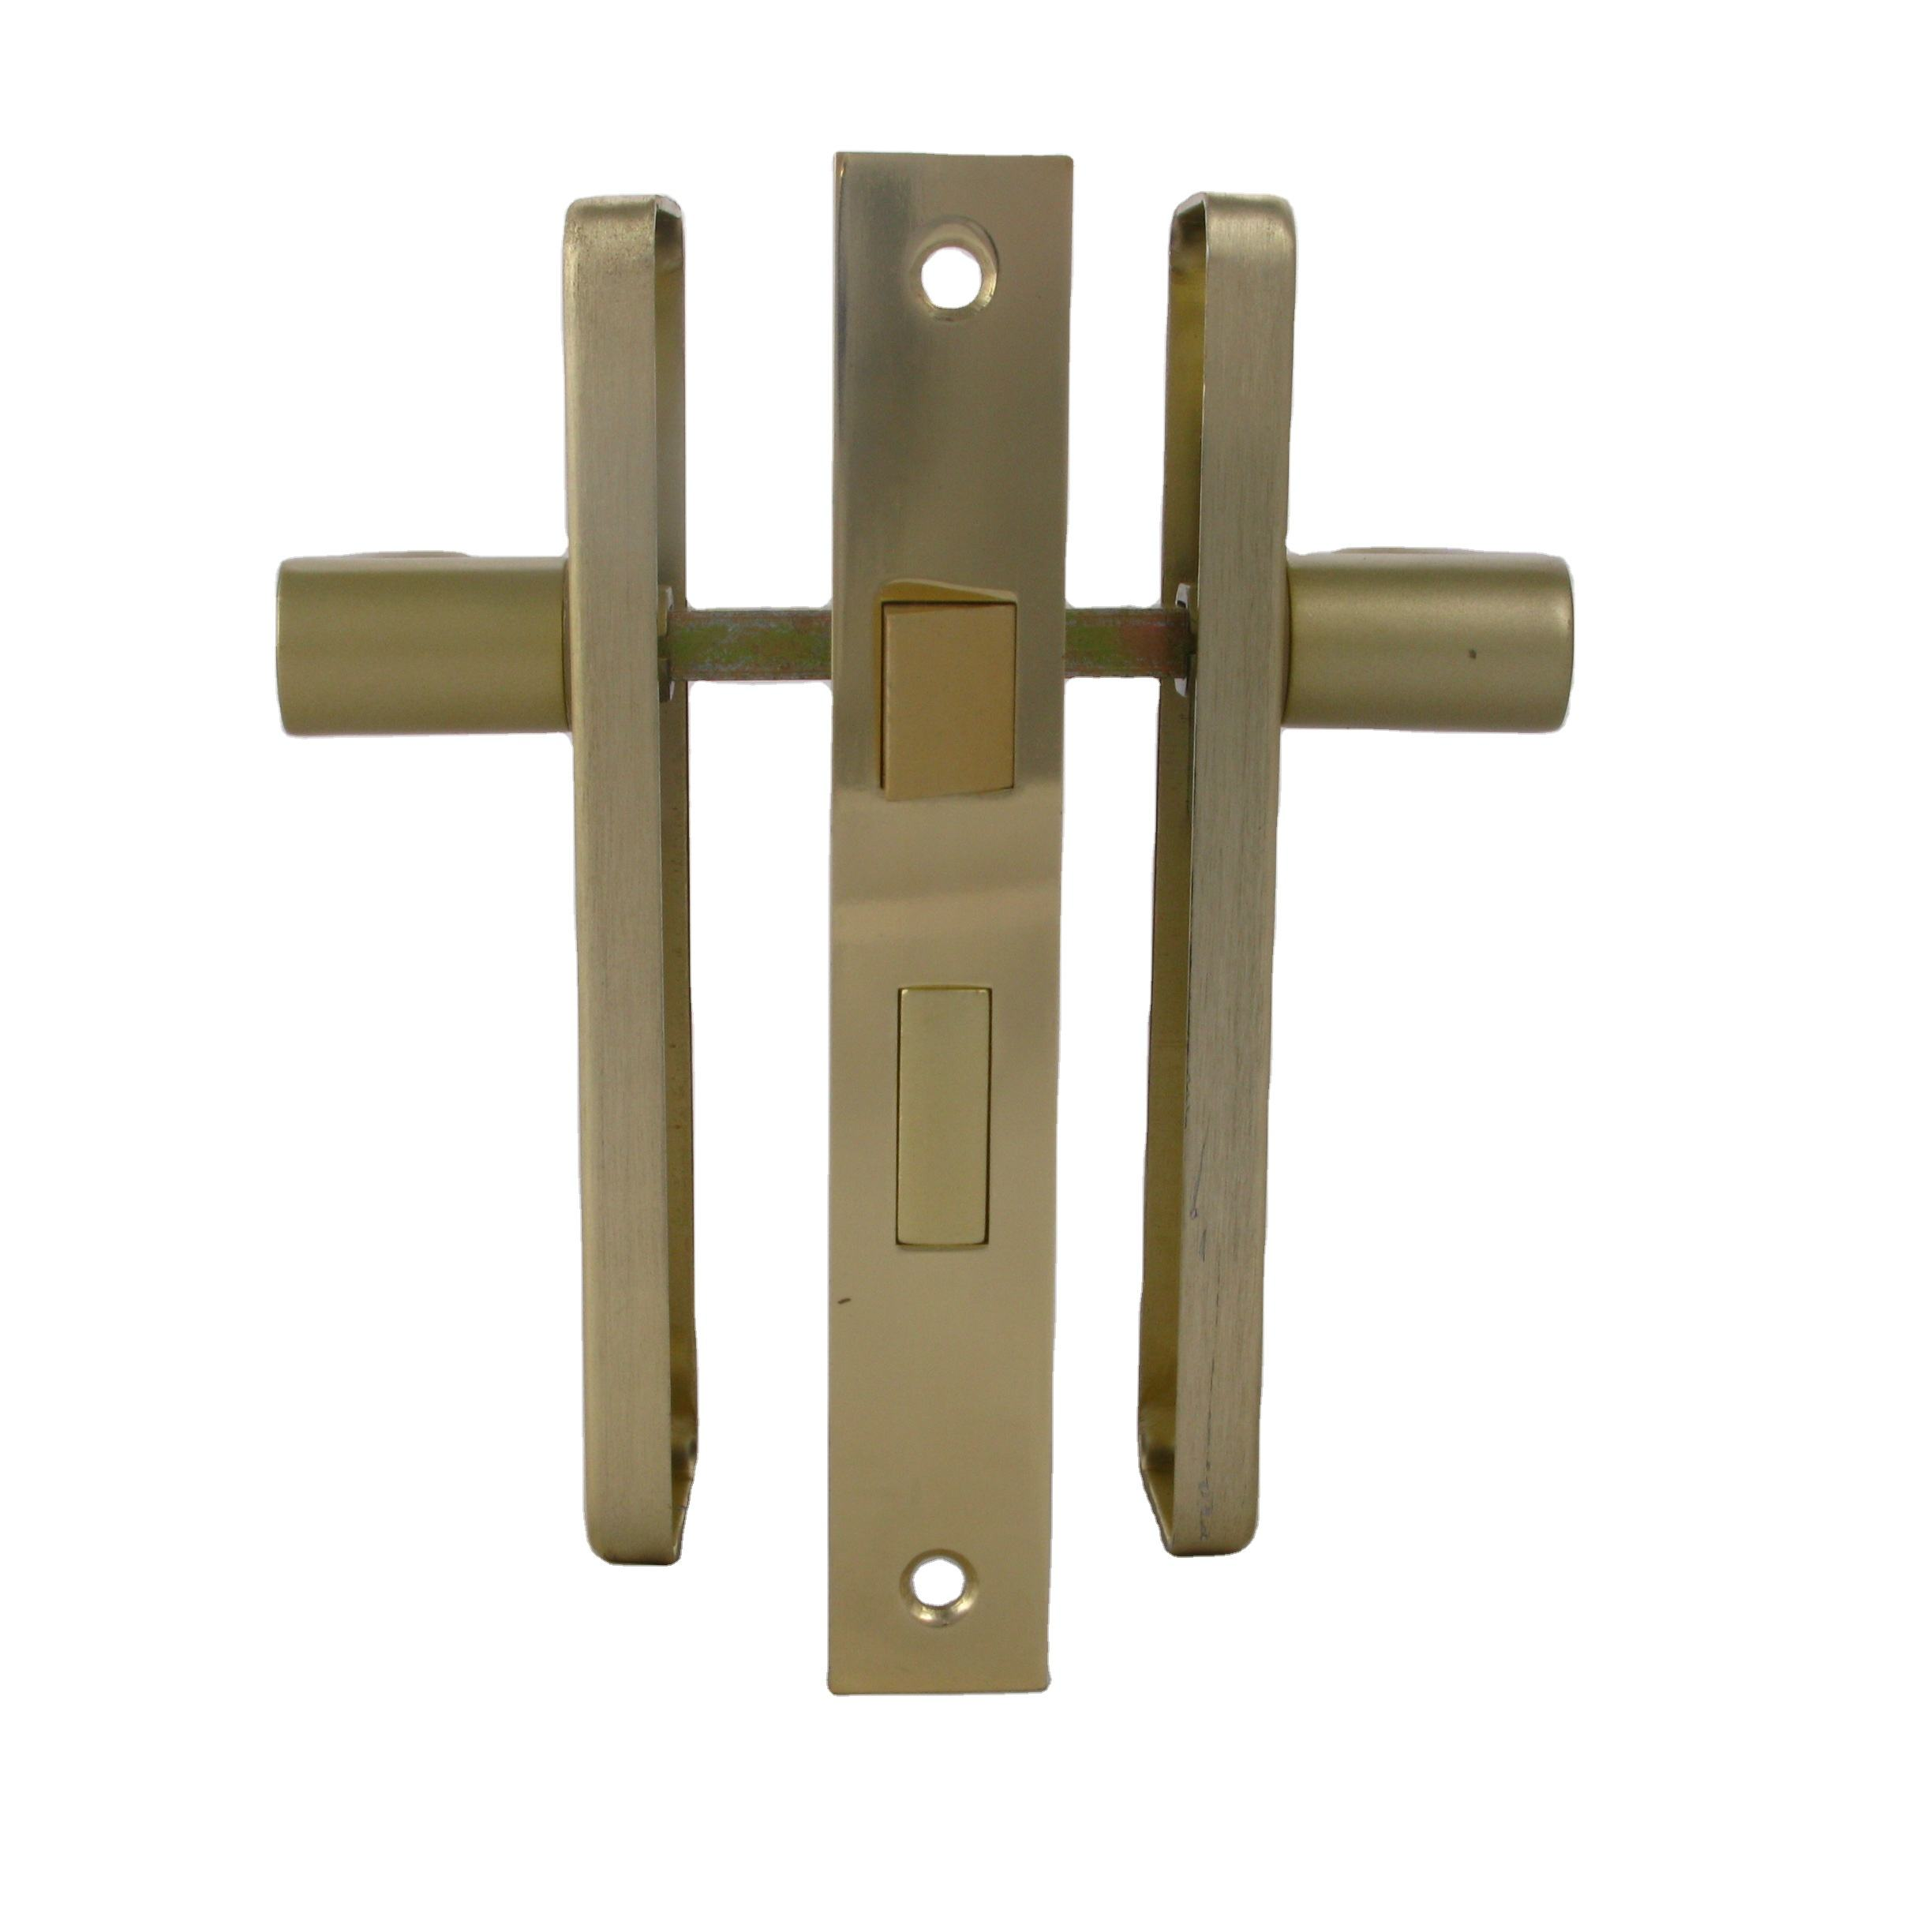 Trending Products 2020 New Arrivals Mechanical Door Lock Silver Locks, Aluminium Euro Profile zinc Keys 2 Lever Lock Set